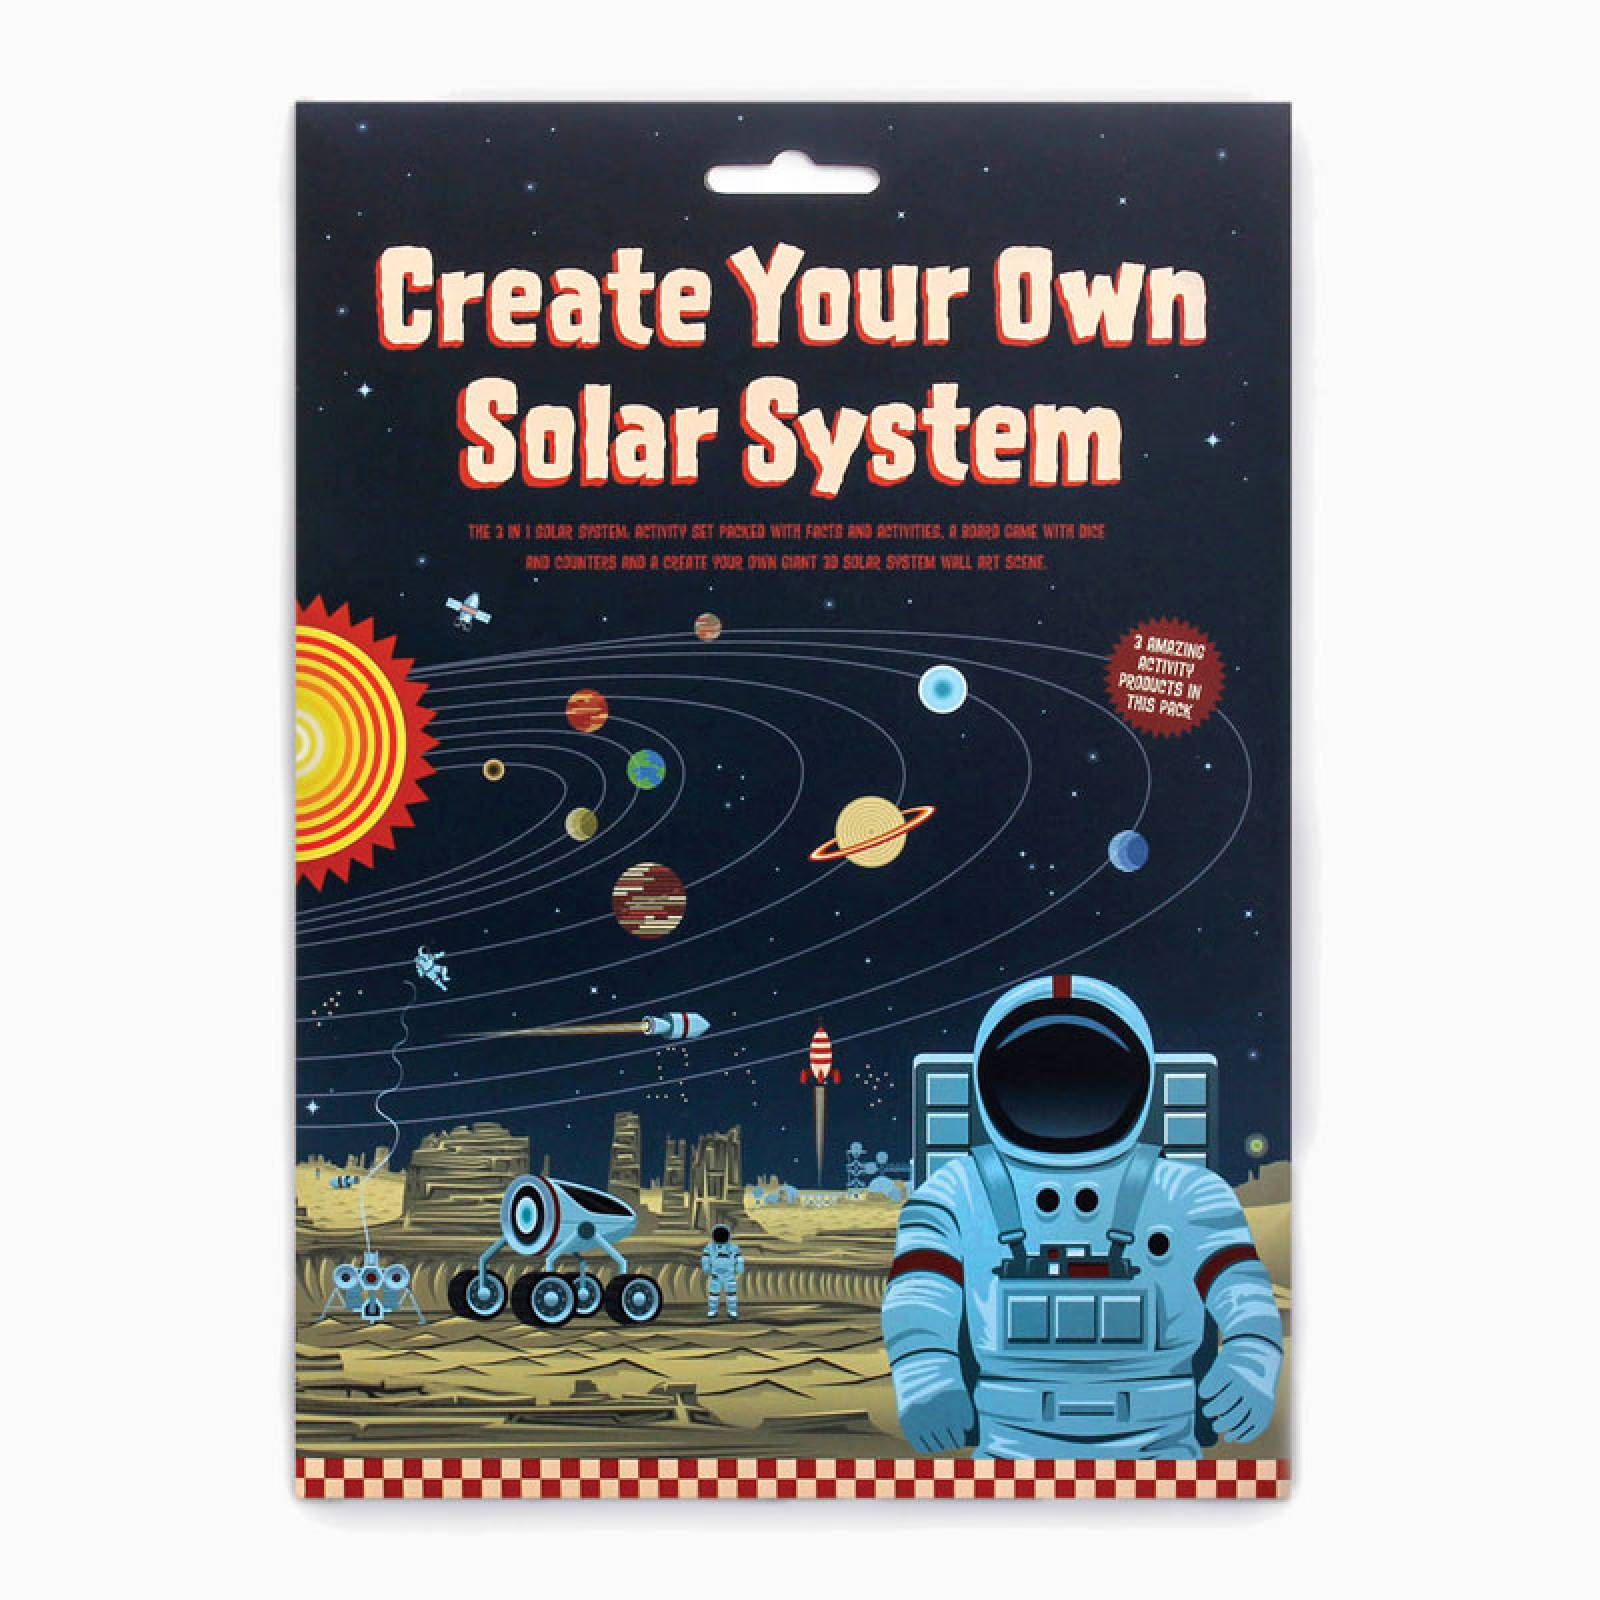 Create Your Own Solar System 7+ thumbnails